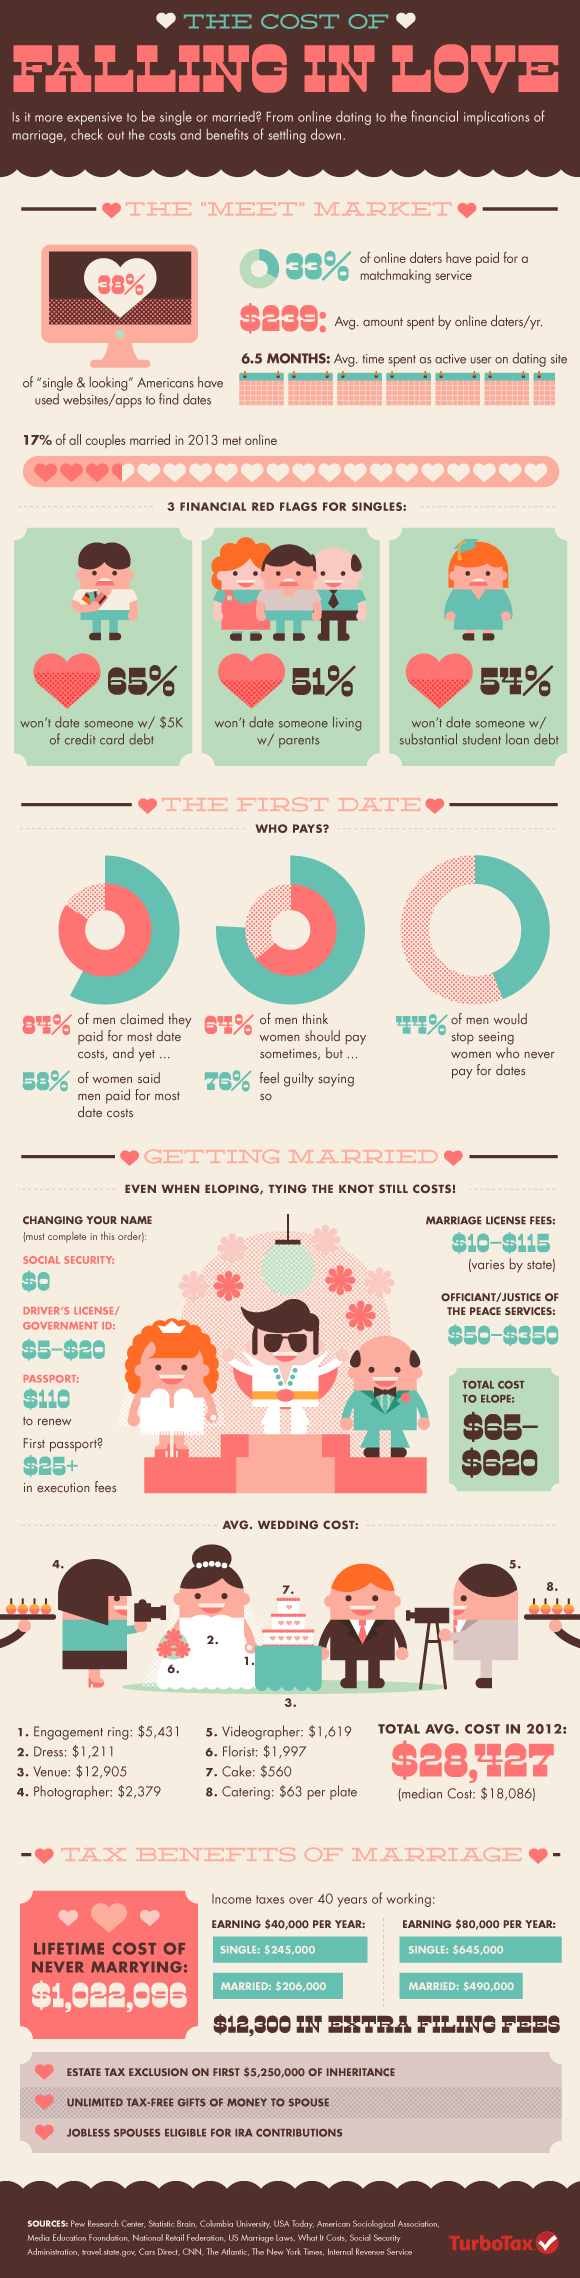 The Cost of Falling in Love #infographic